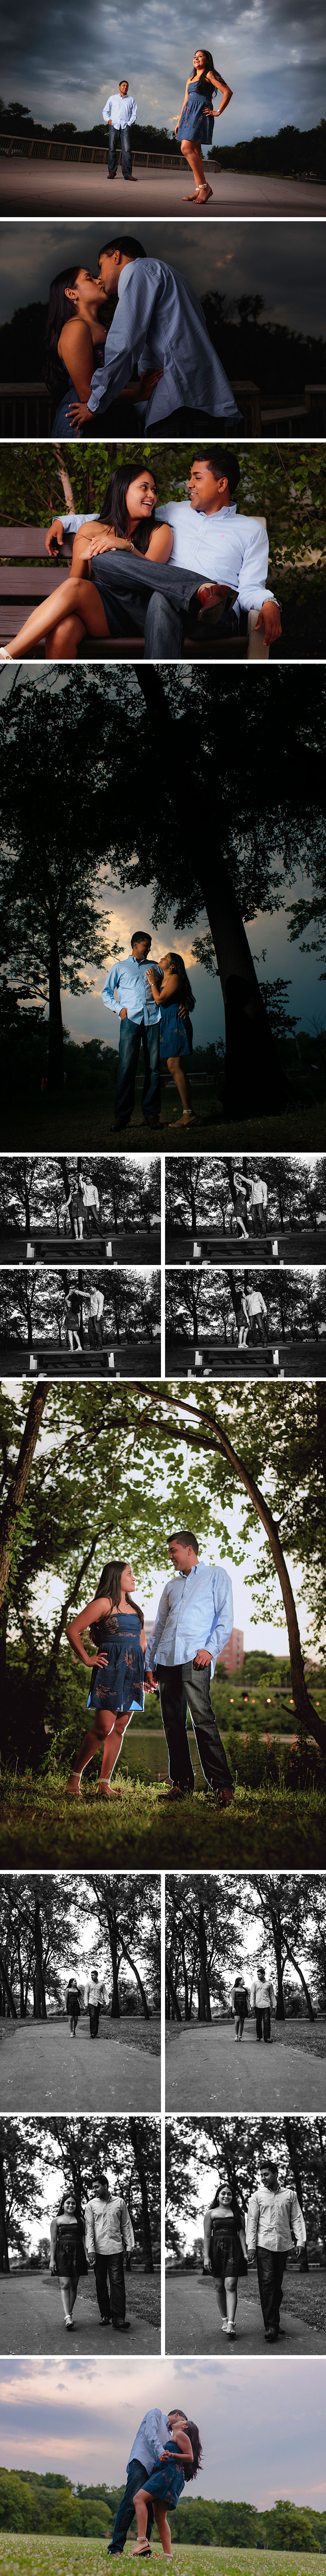 Johnson Park Piscataway, NJ engagement shoot